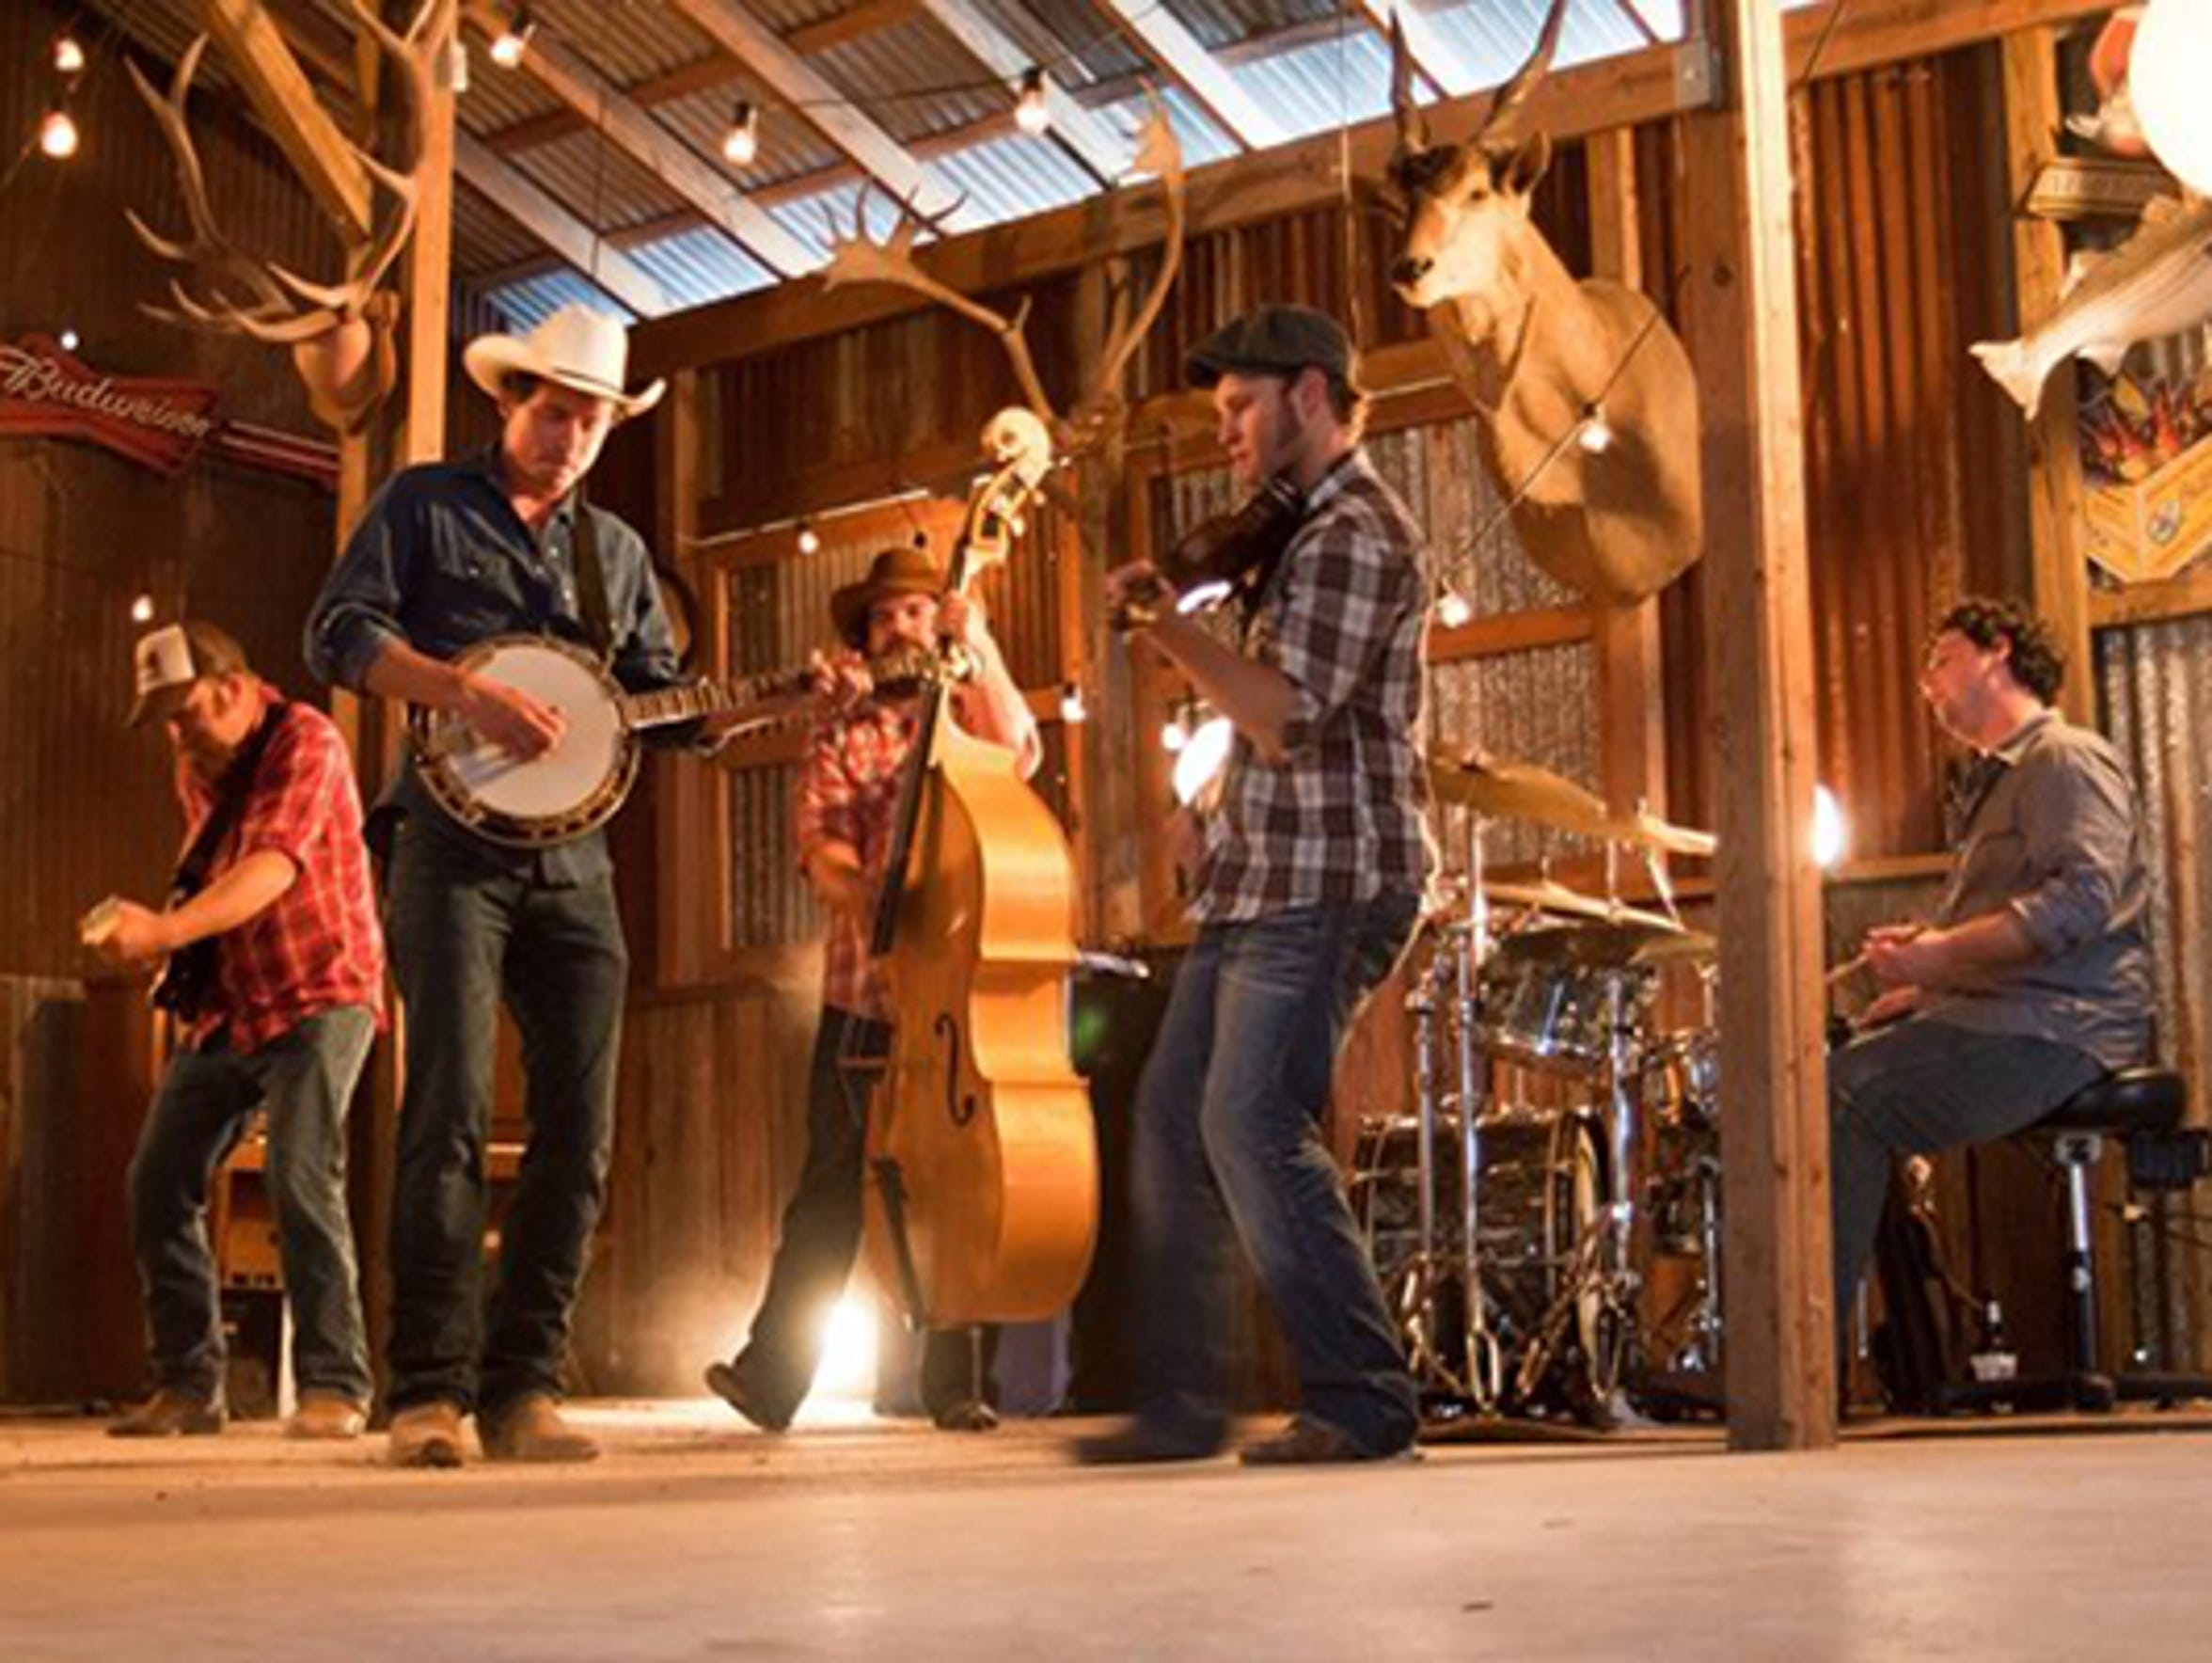 Turnpike Troubadours will appear at 10 p.m. Saturday,